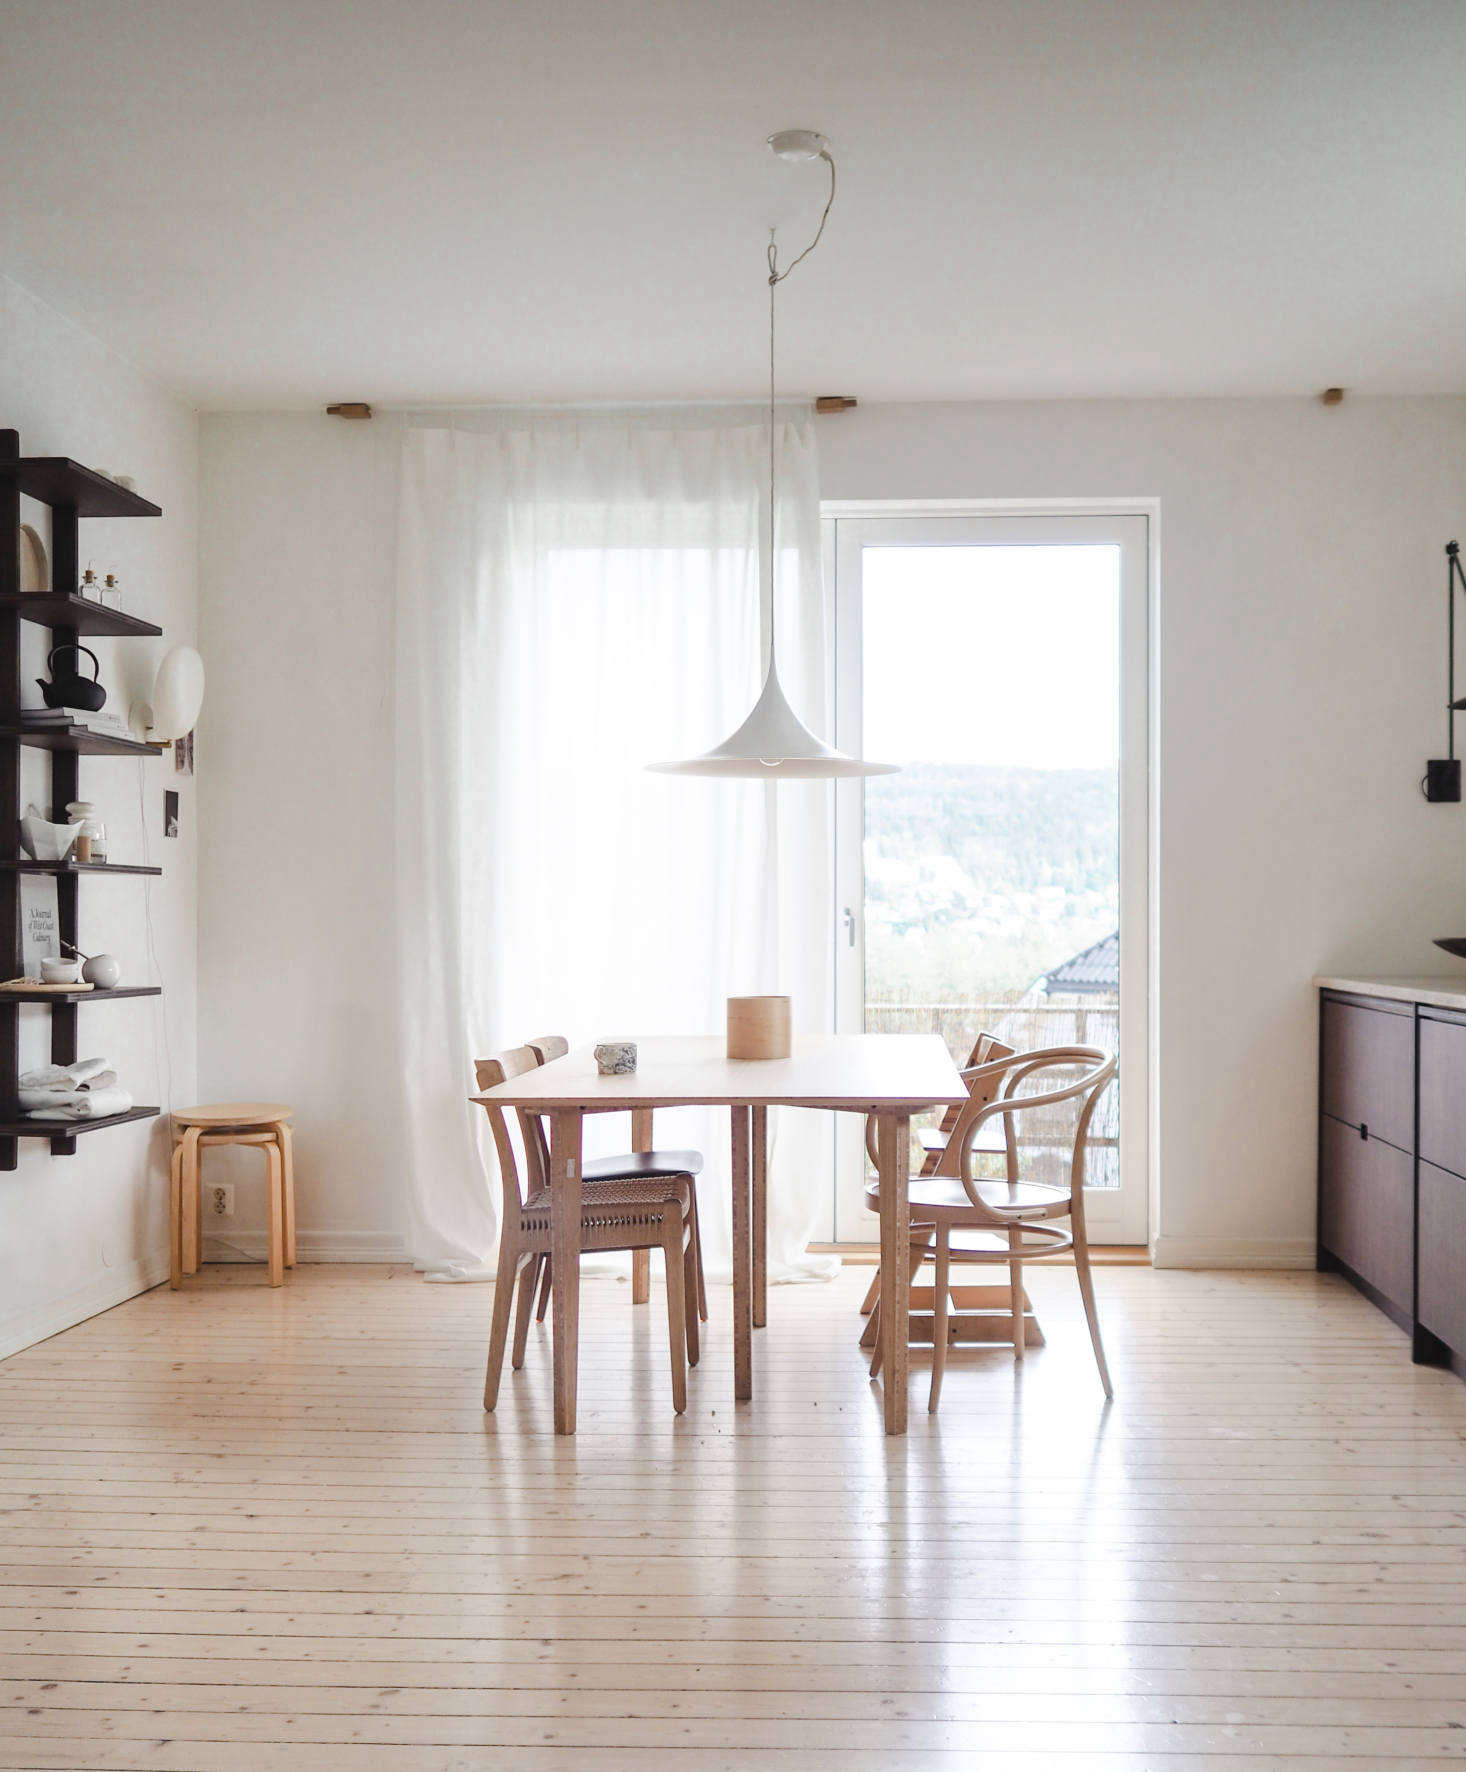 The couple and their two young sons live in Drammen, Norway, in a 30&#8